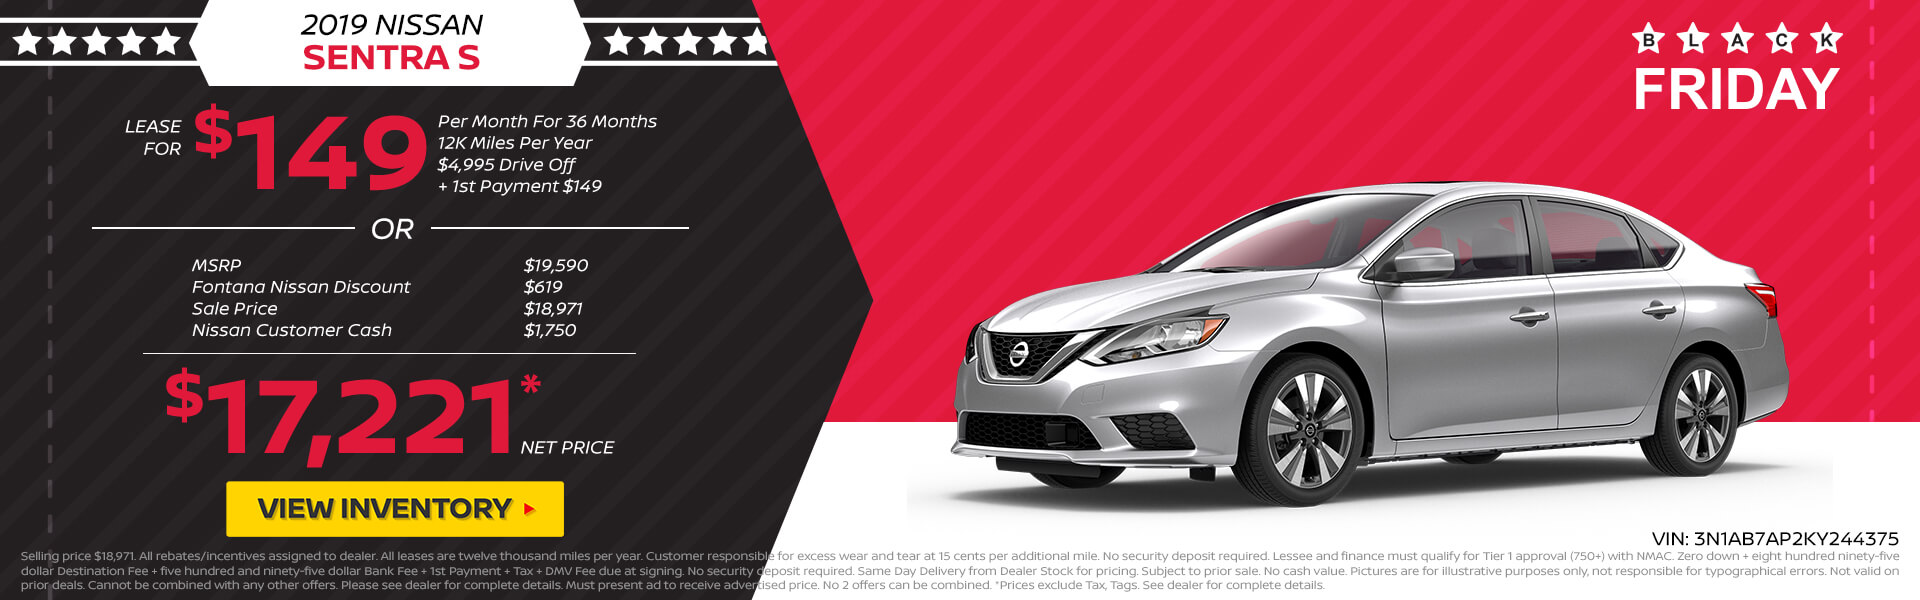 Nissan Sentra $149 Lease or $17,221 Purchase